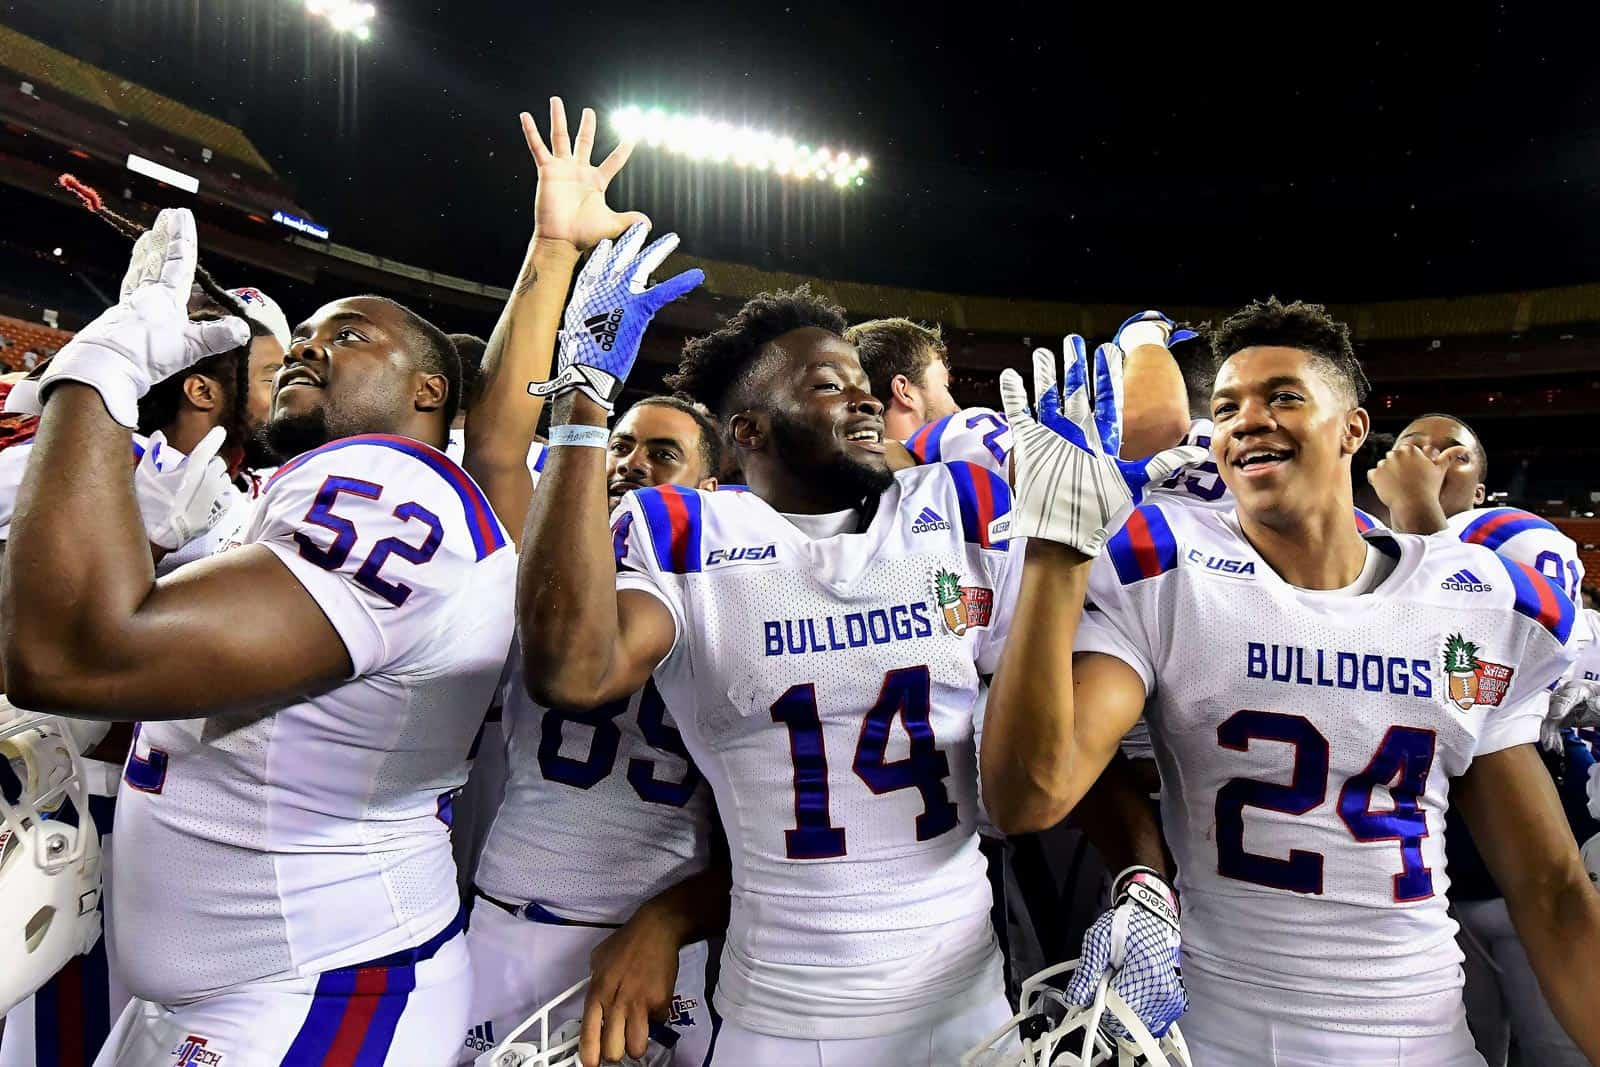 LA Tech Bulldogs